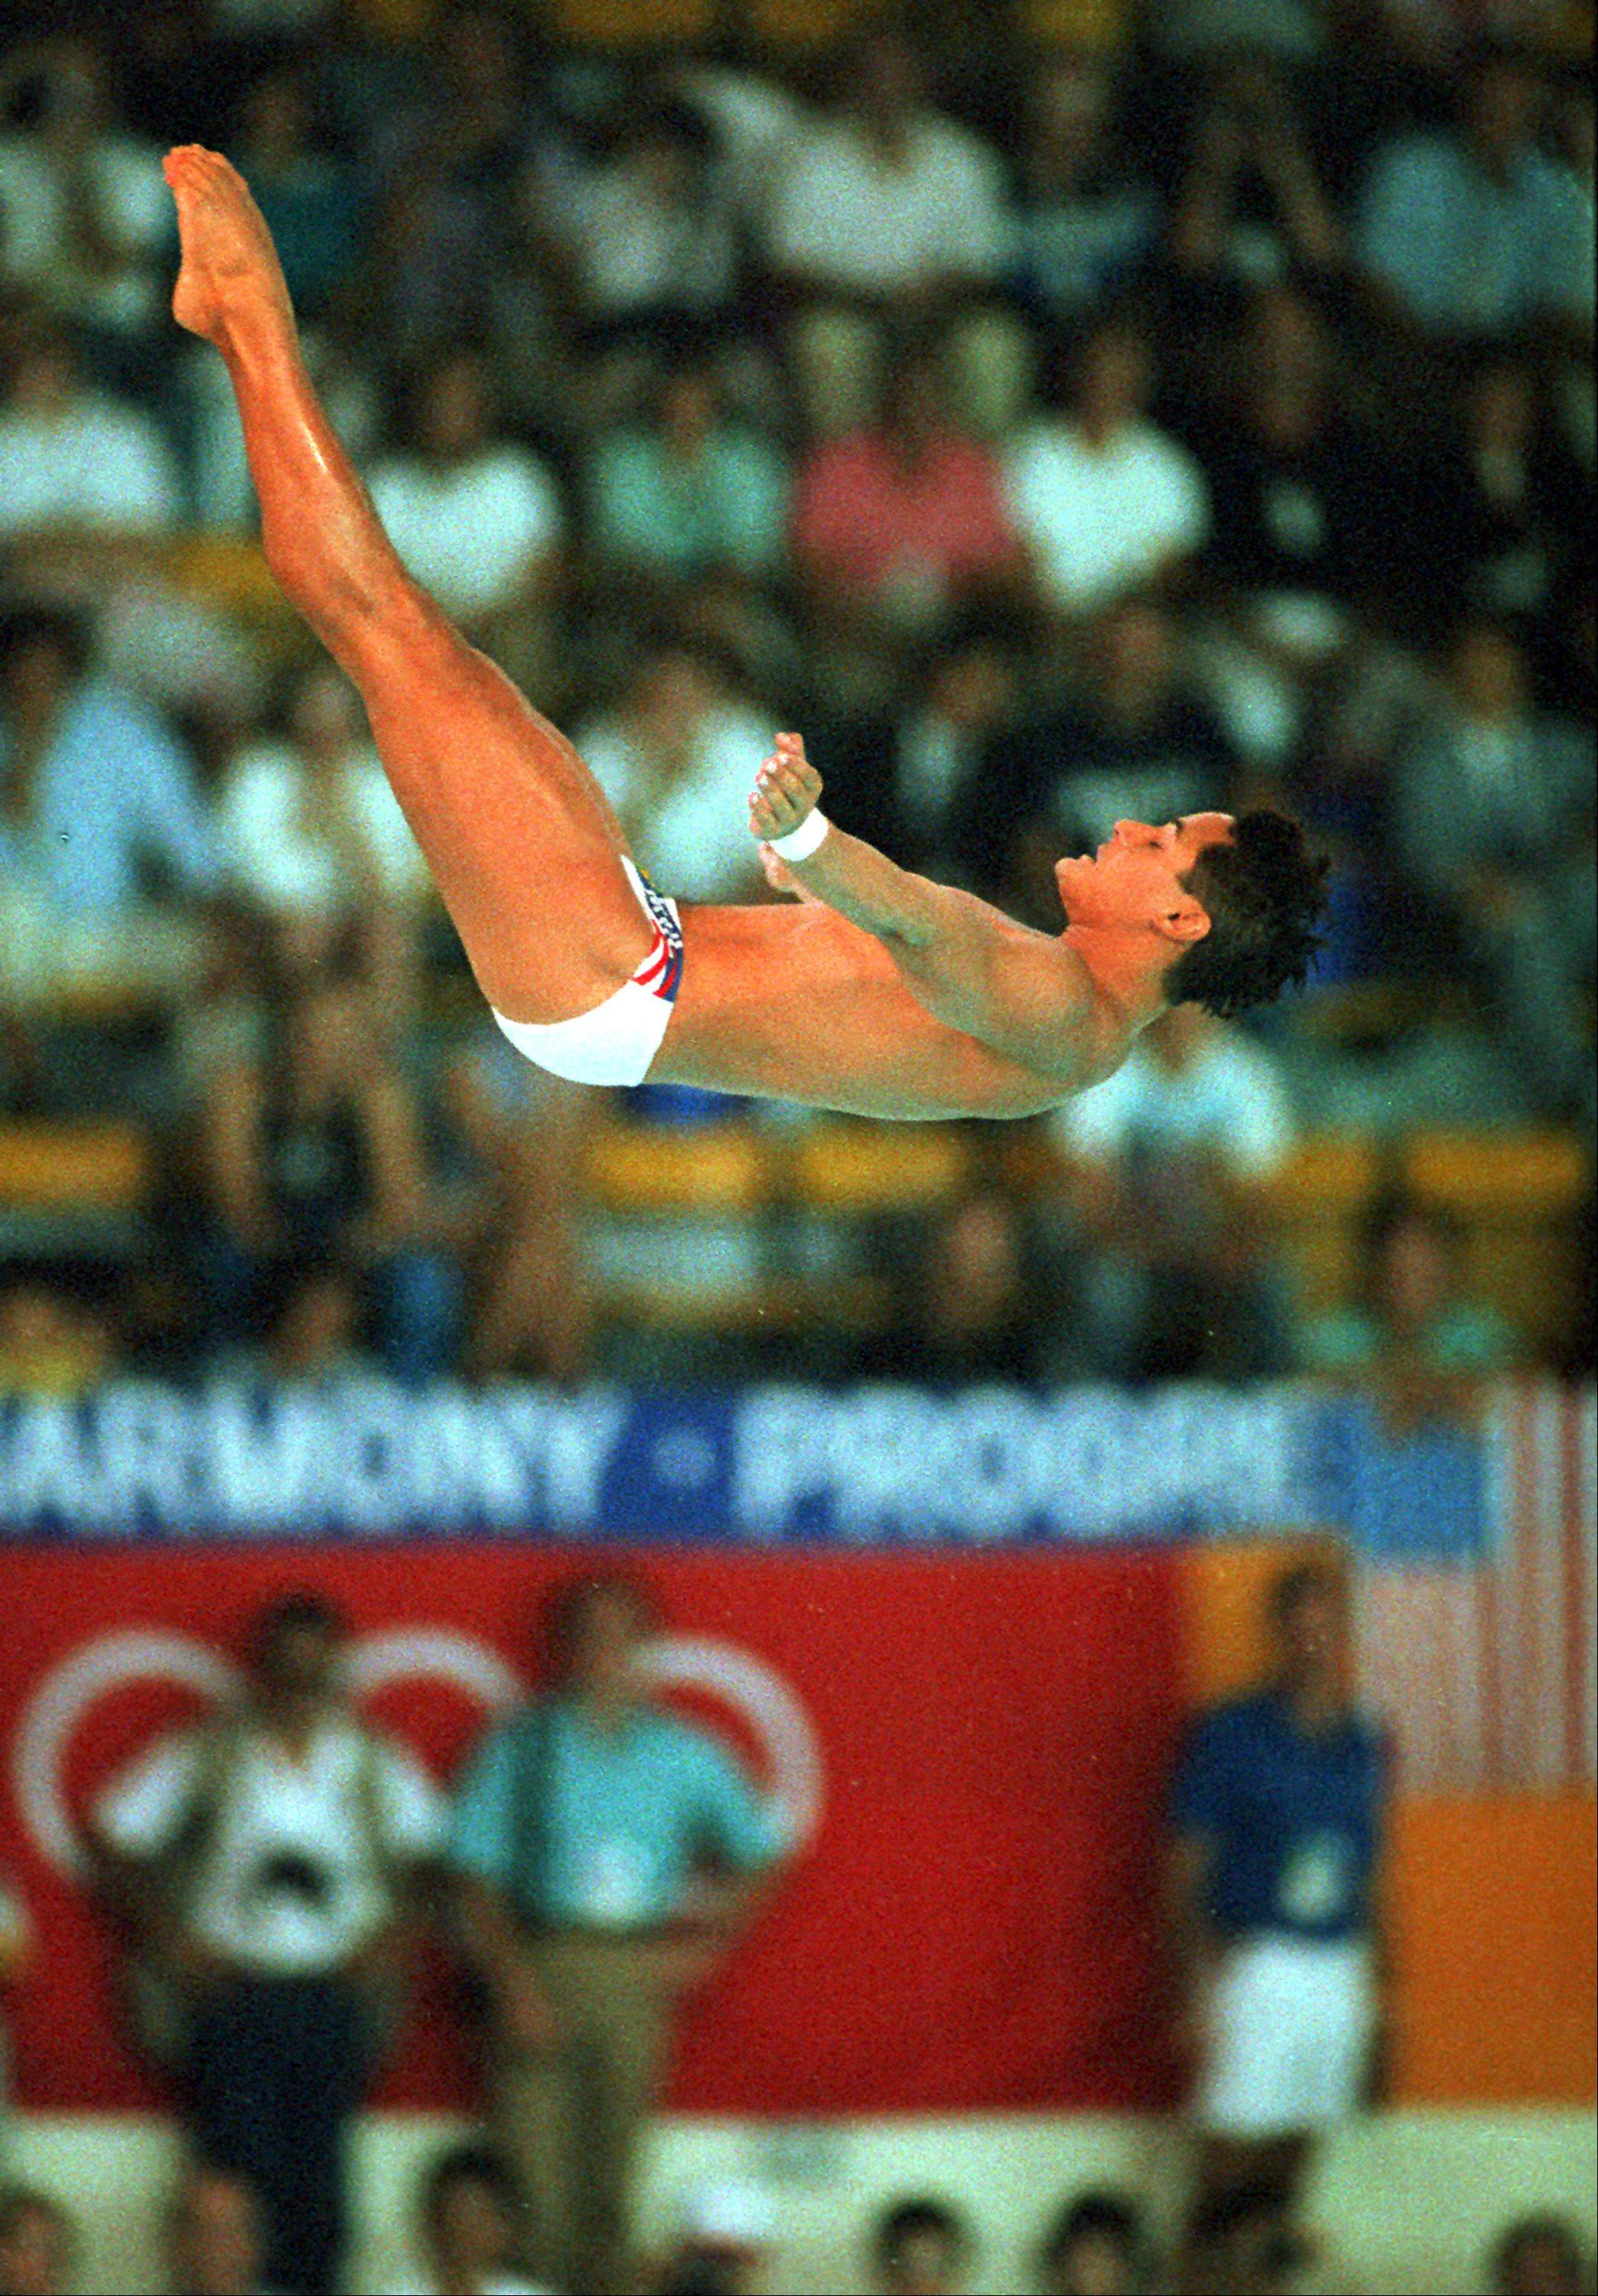 Greg Louganis, of U.S., nails his 10-meter platform diving final at the XXIV Summer Olympic Games in Seoul after hitting his head earlier.